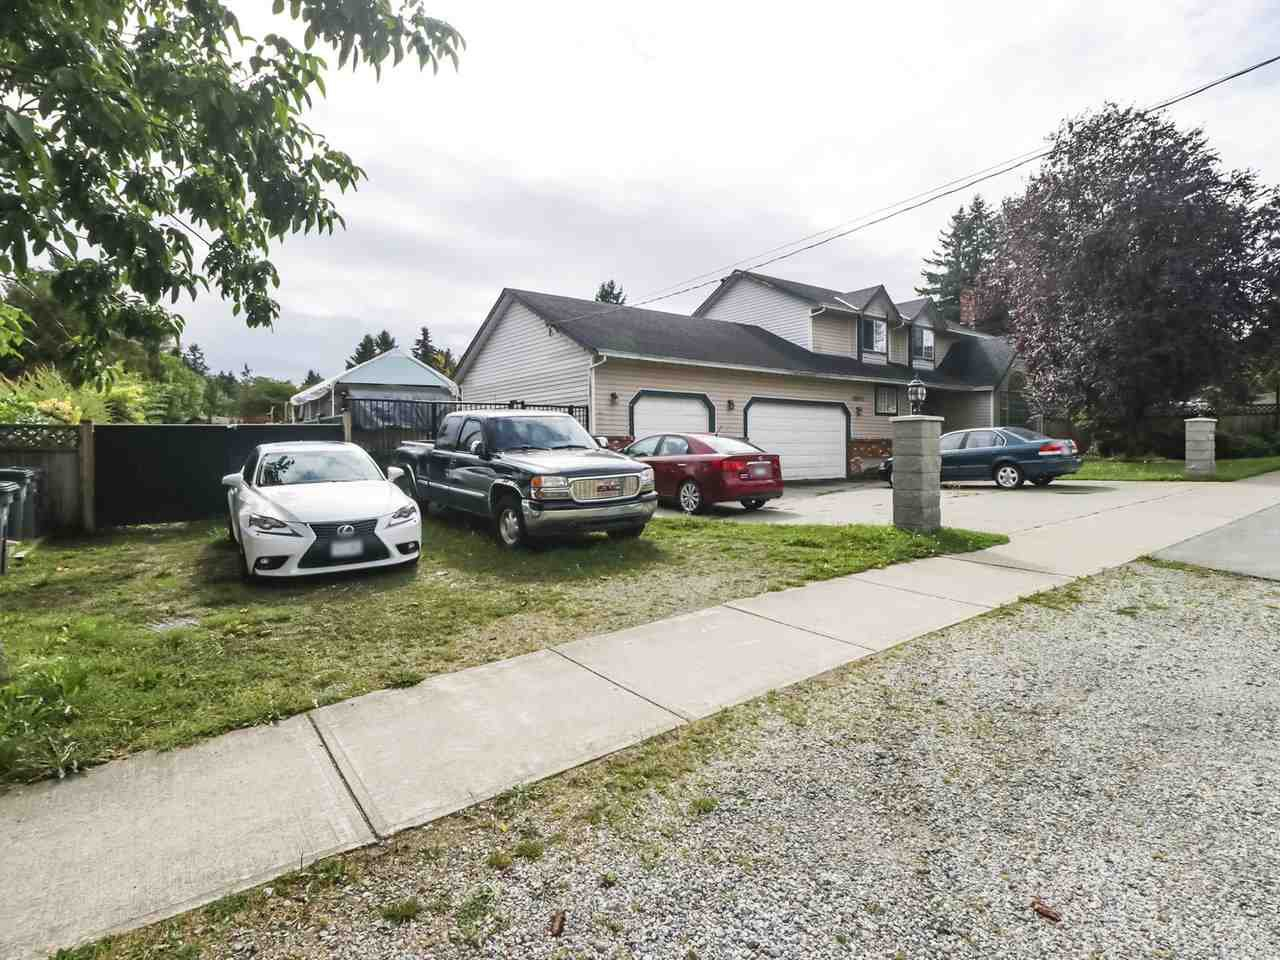 Main Photo: 14992 76 Avenue in Surrey: East Newton House for sale : MLS®# R2440953